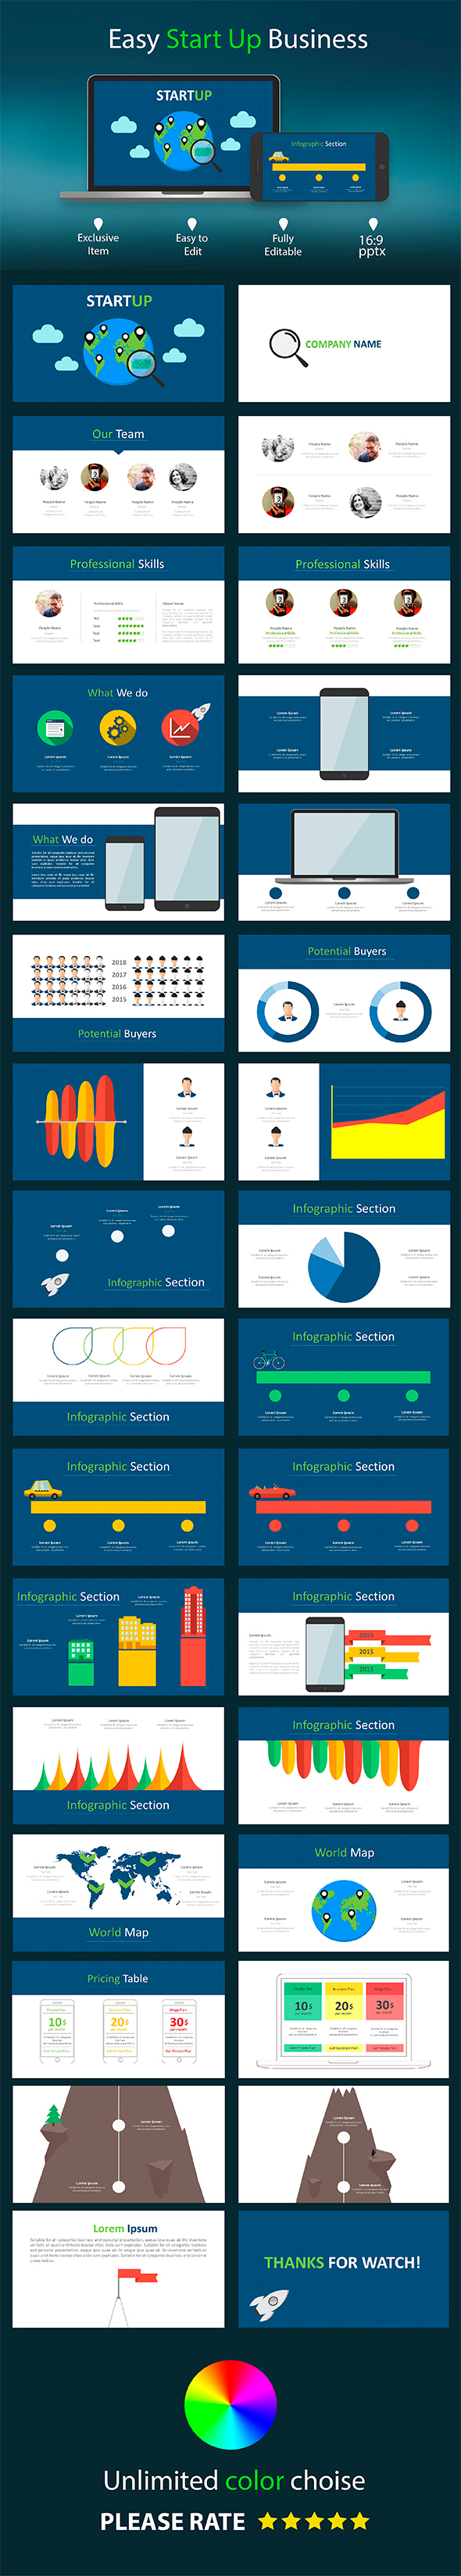 Easy StartUp Business - PowerPoint  Presentation - Abstract PowerPoint Templates